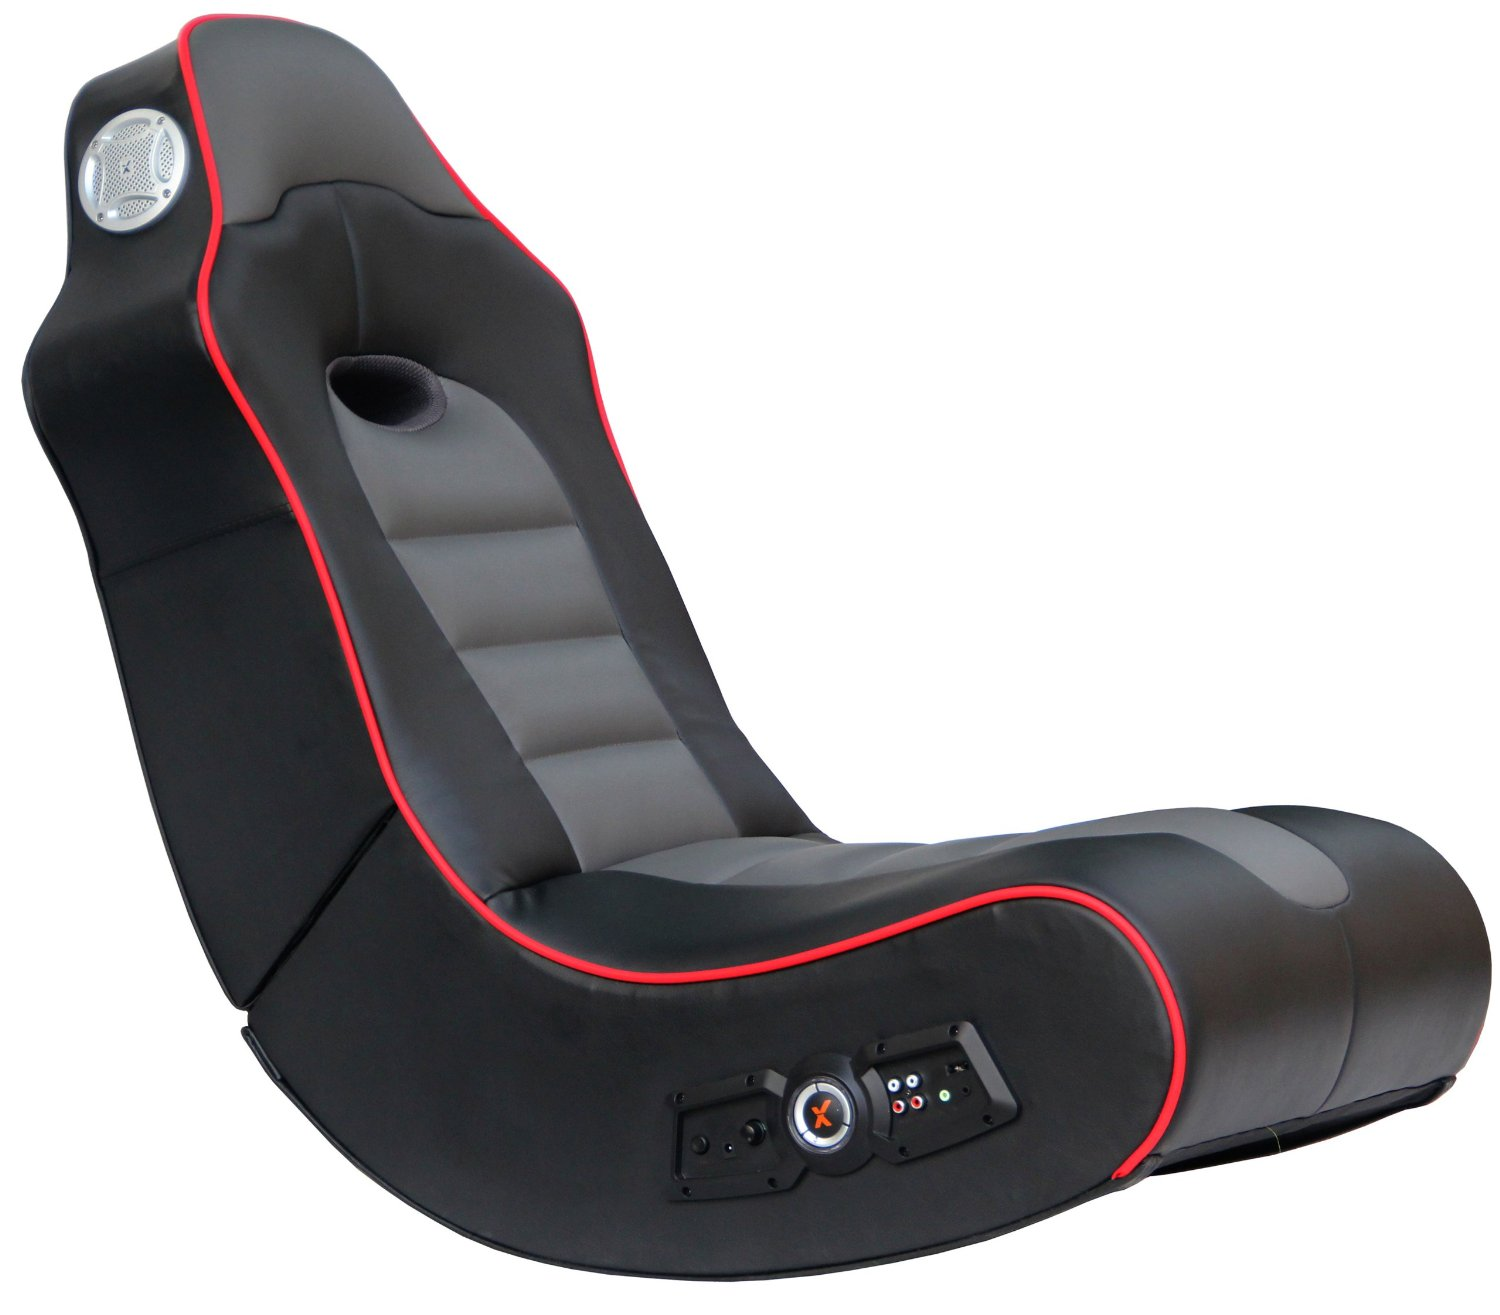 Gaiming Chair Gaming Chair For Adults Homesfeed